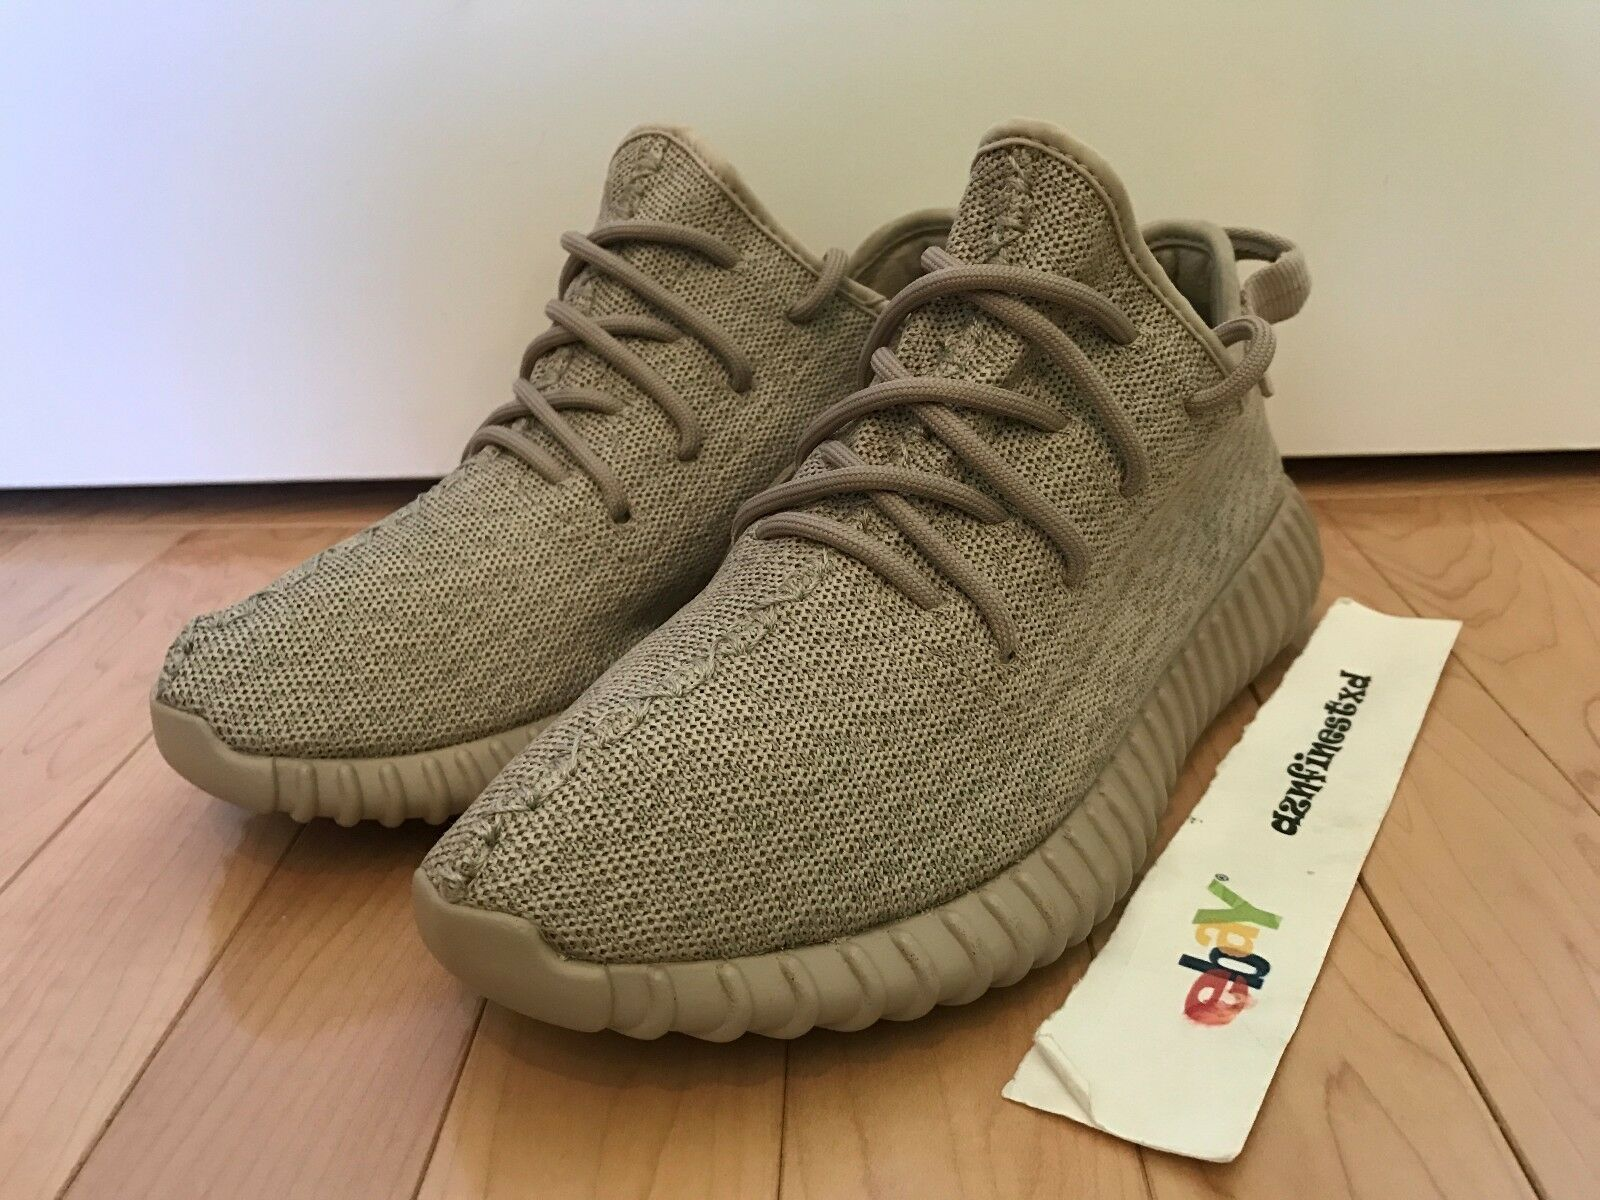 Adidas Yeezy Boost 350 Oxford Tan Used Sz 7.5 AQ2661